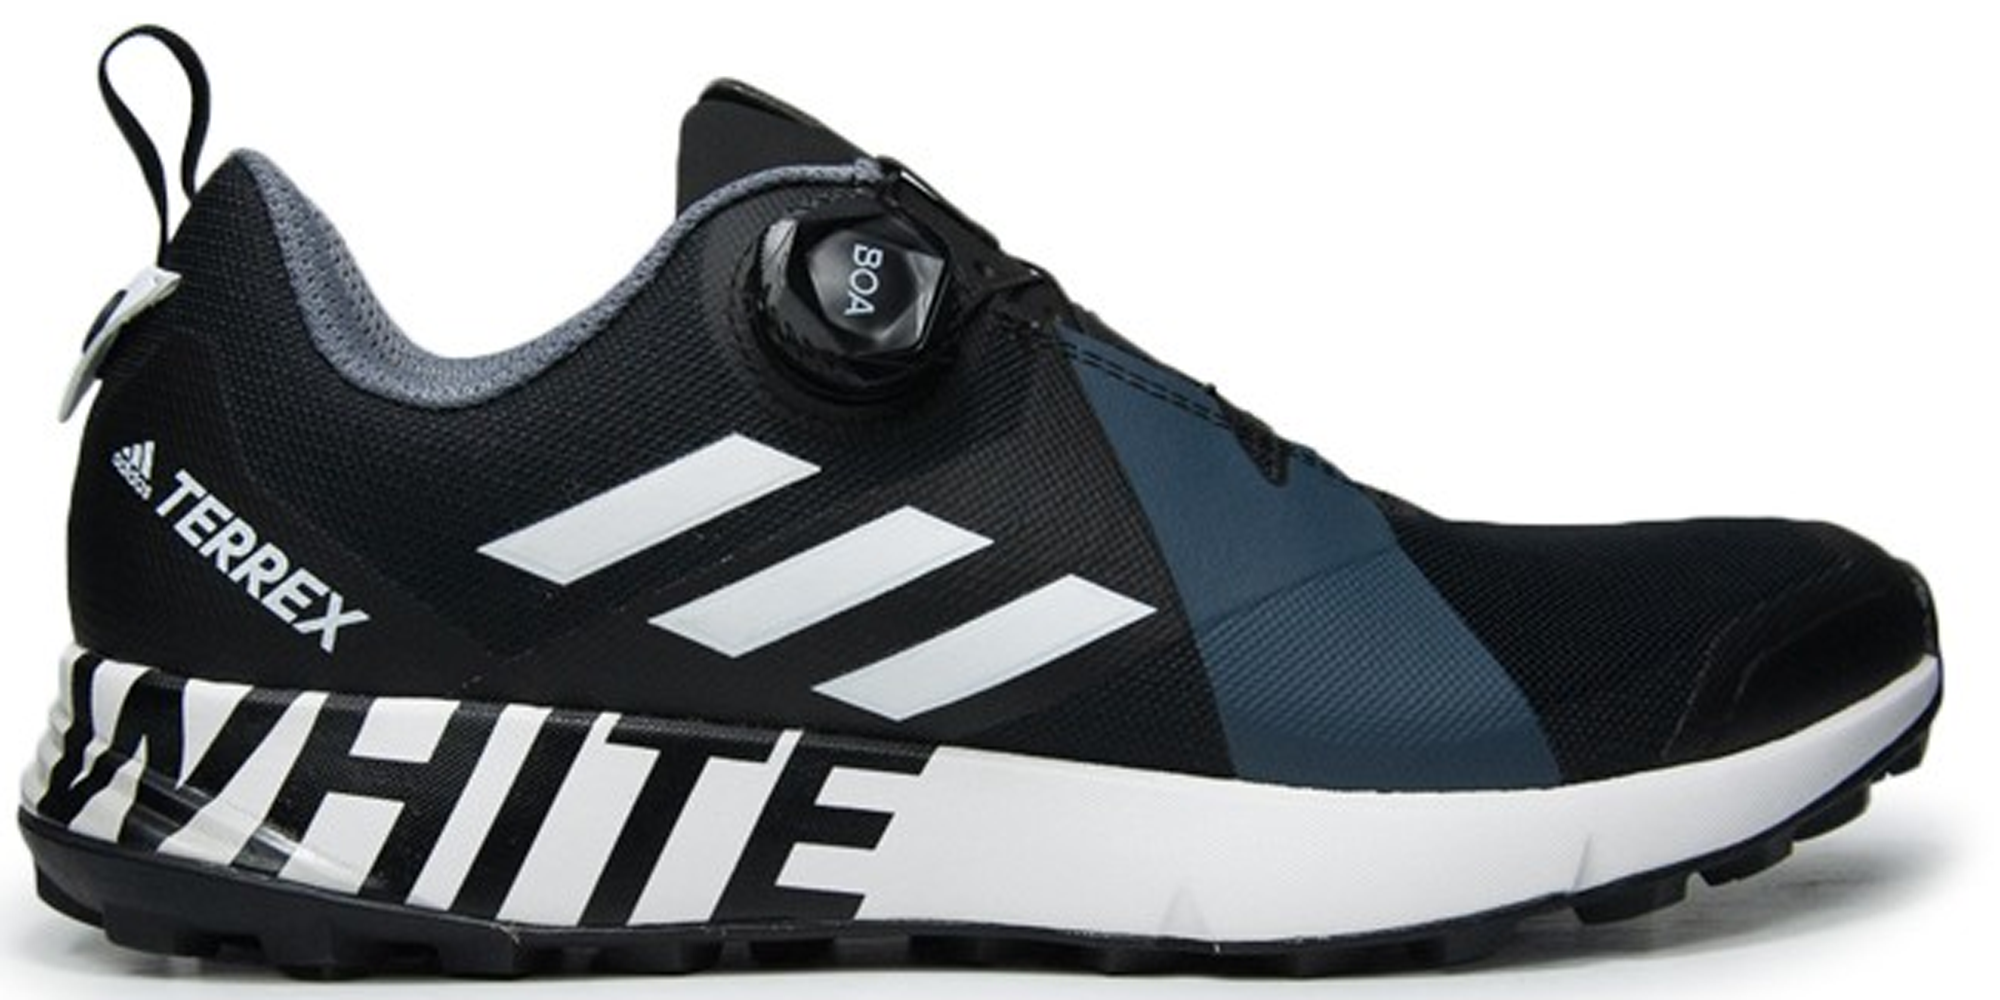 adidas Terrex 2 White Mountaineering Black